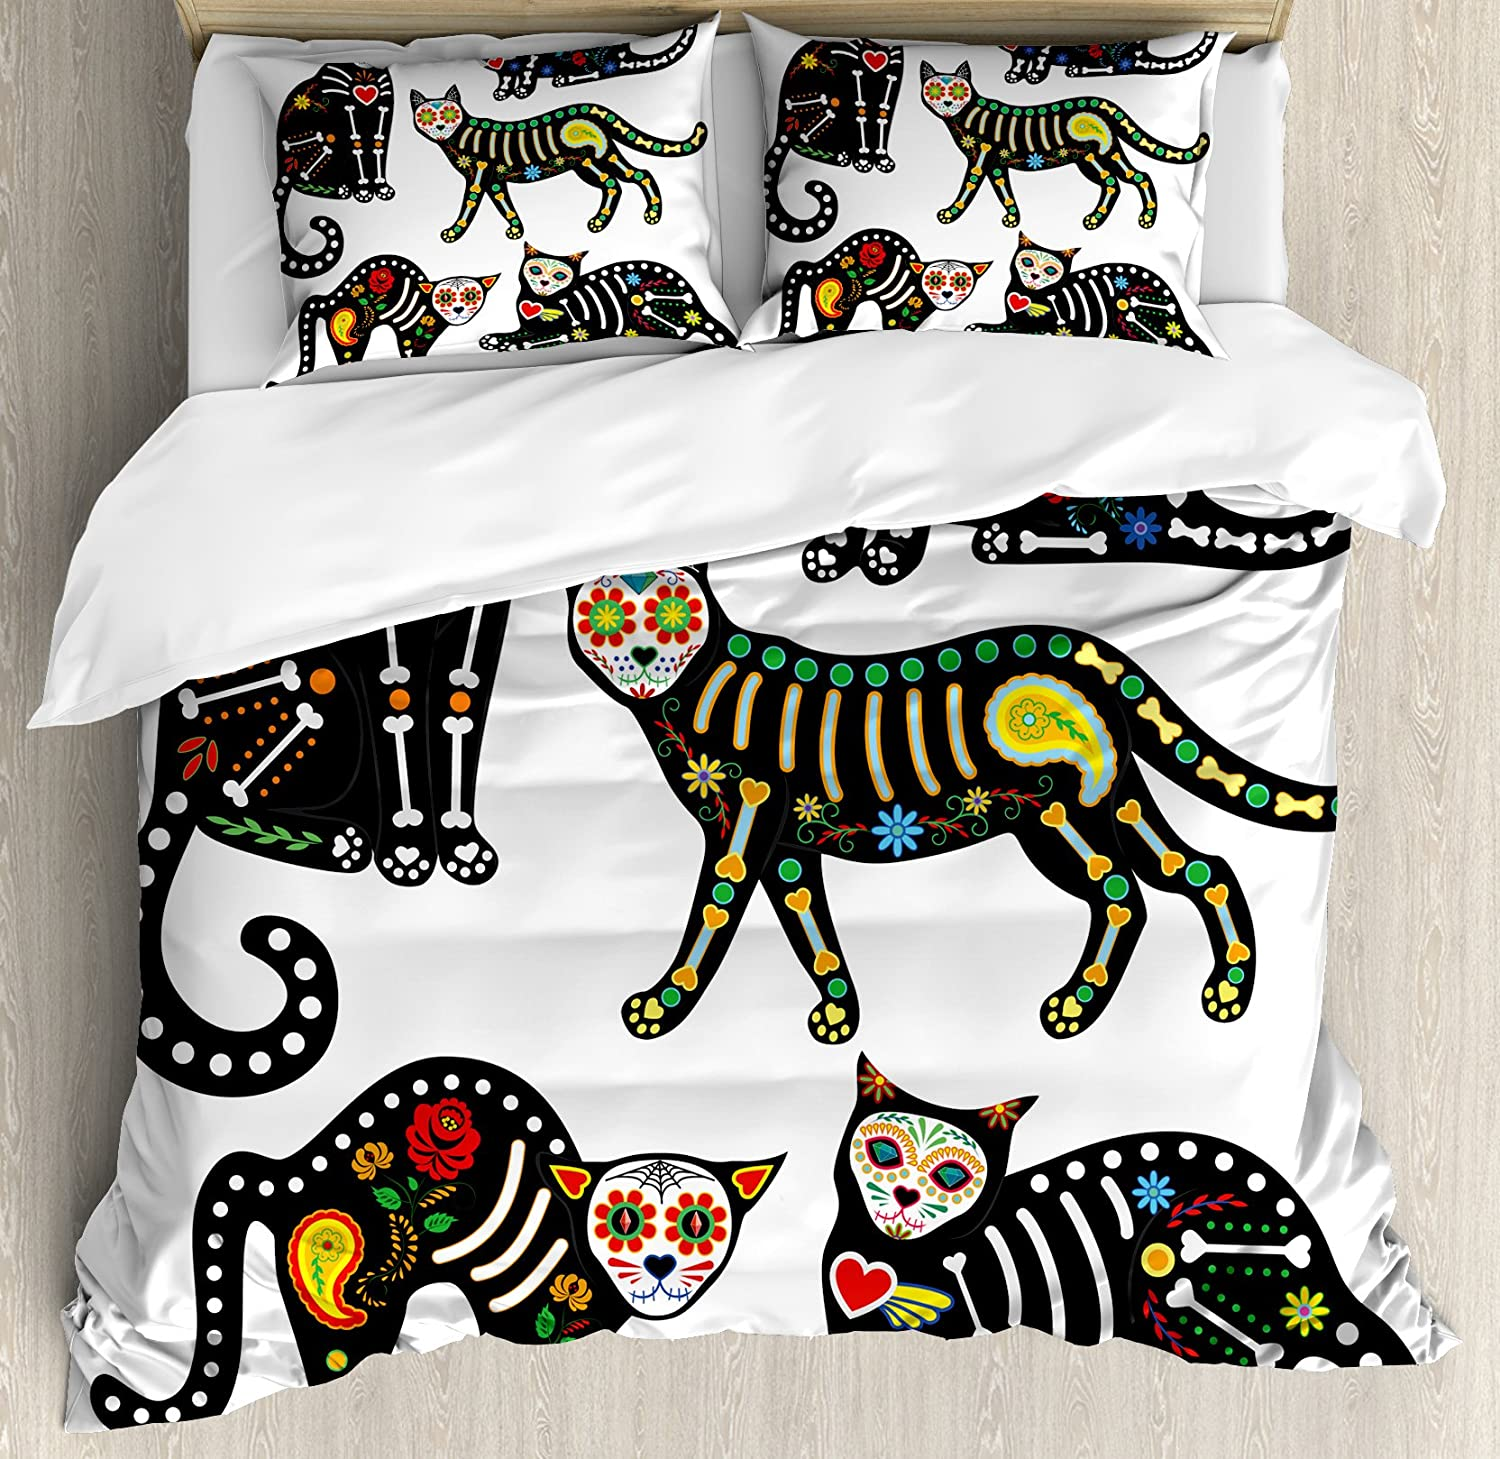 Ambesonne Sugar Skull Duvet Cover Set, Calavera Inspired Ornate Black Cats Mexican Style Holiday The Day of The Dead, Decorative 3 Piece Bedding Set with 2 Pillow Shams, Queen Size, Black White